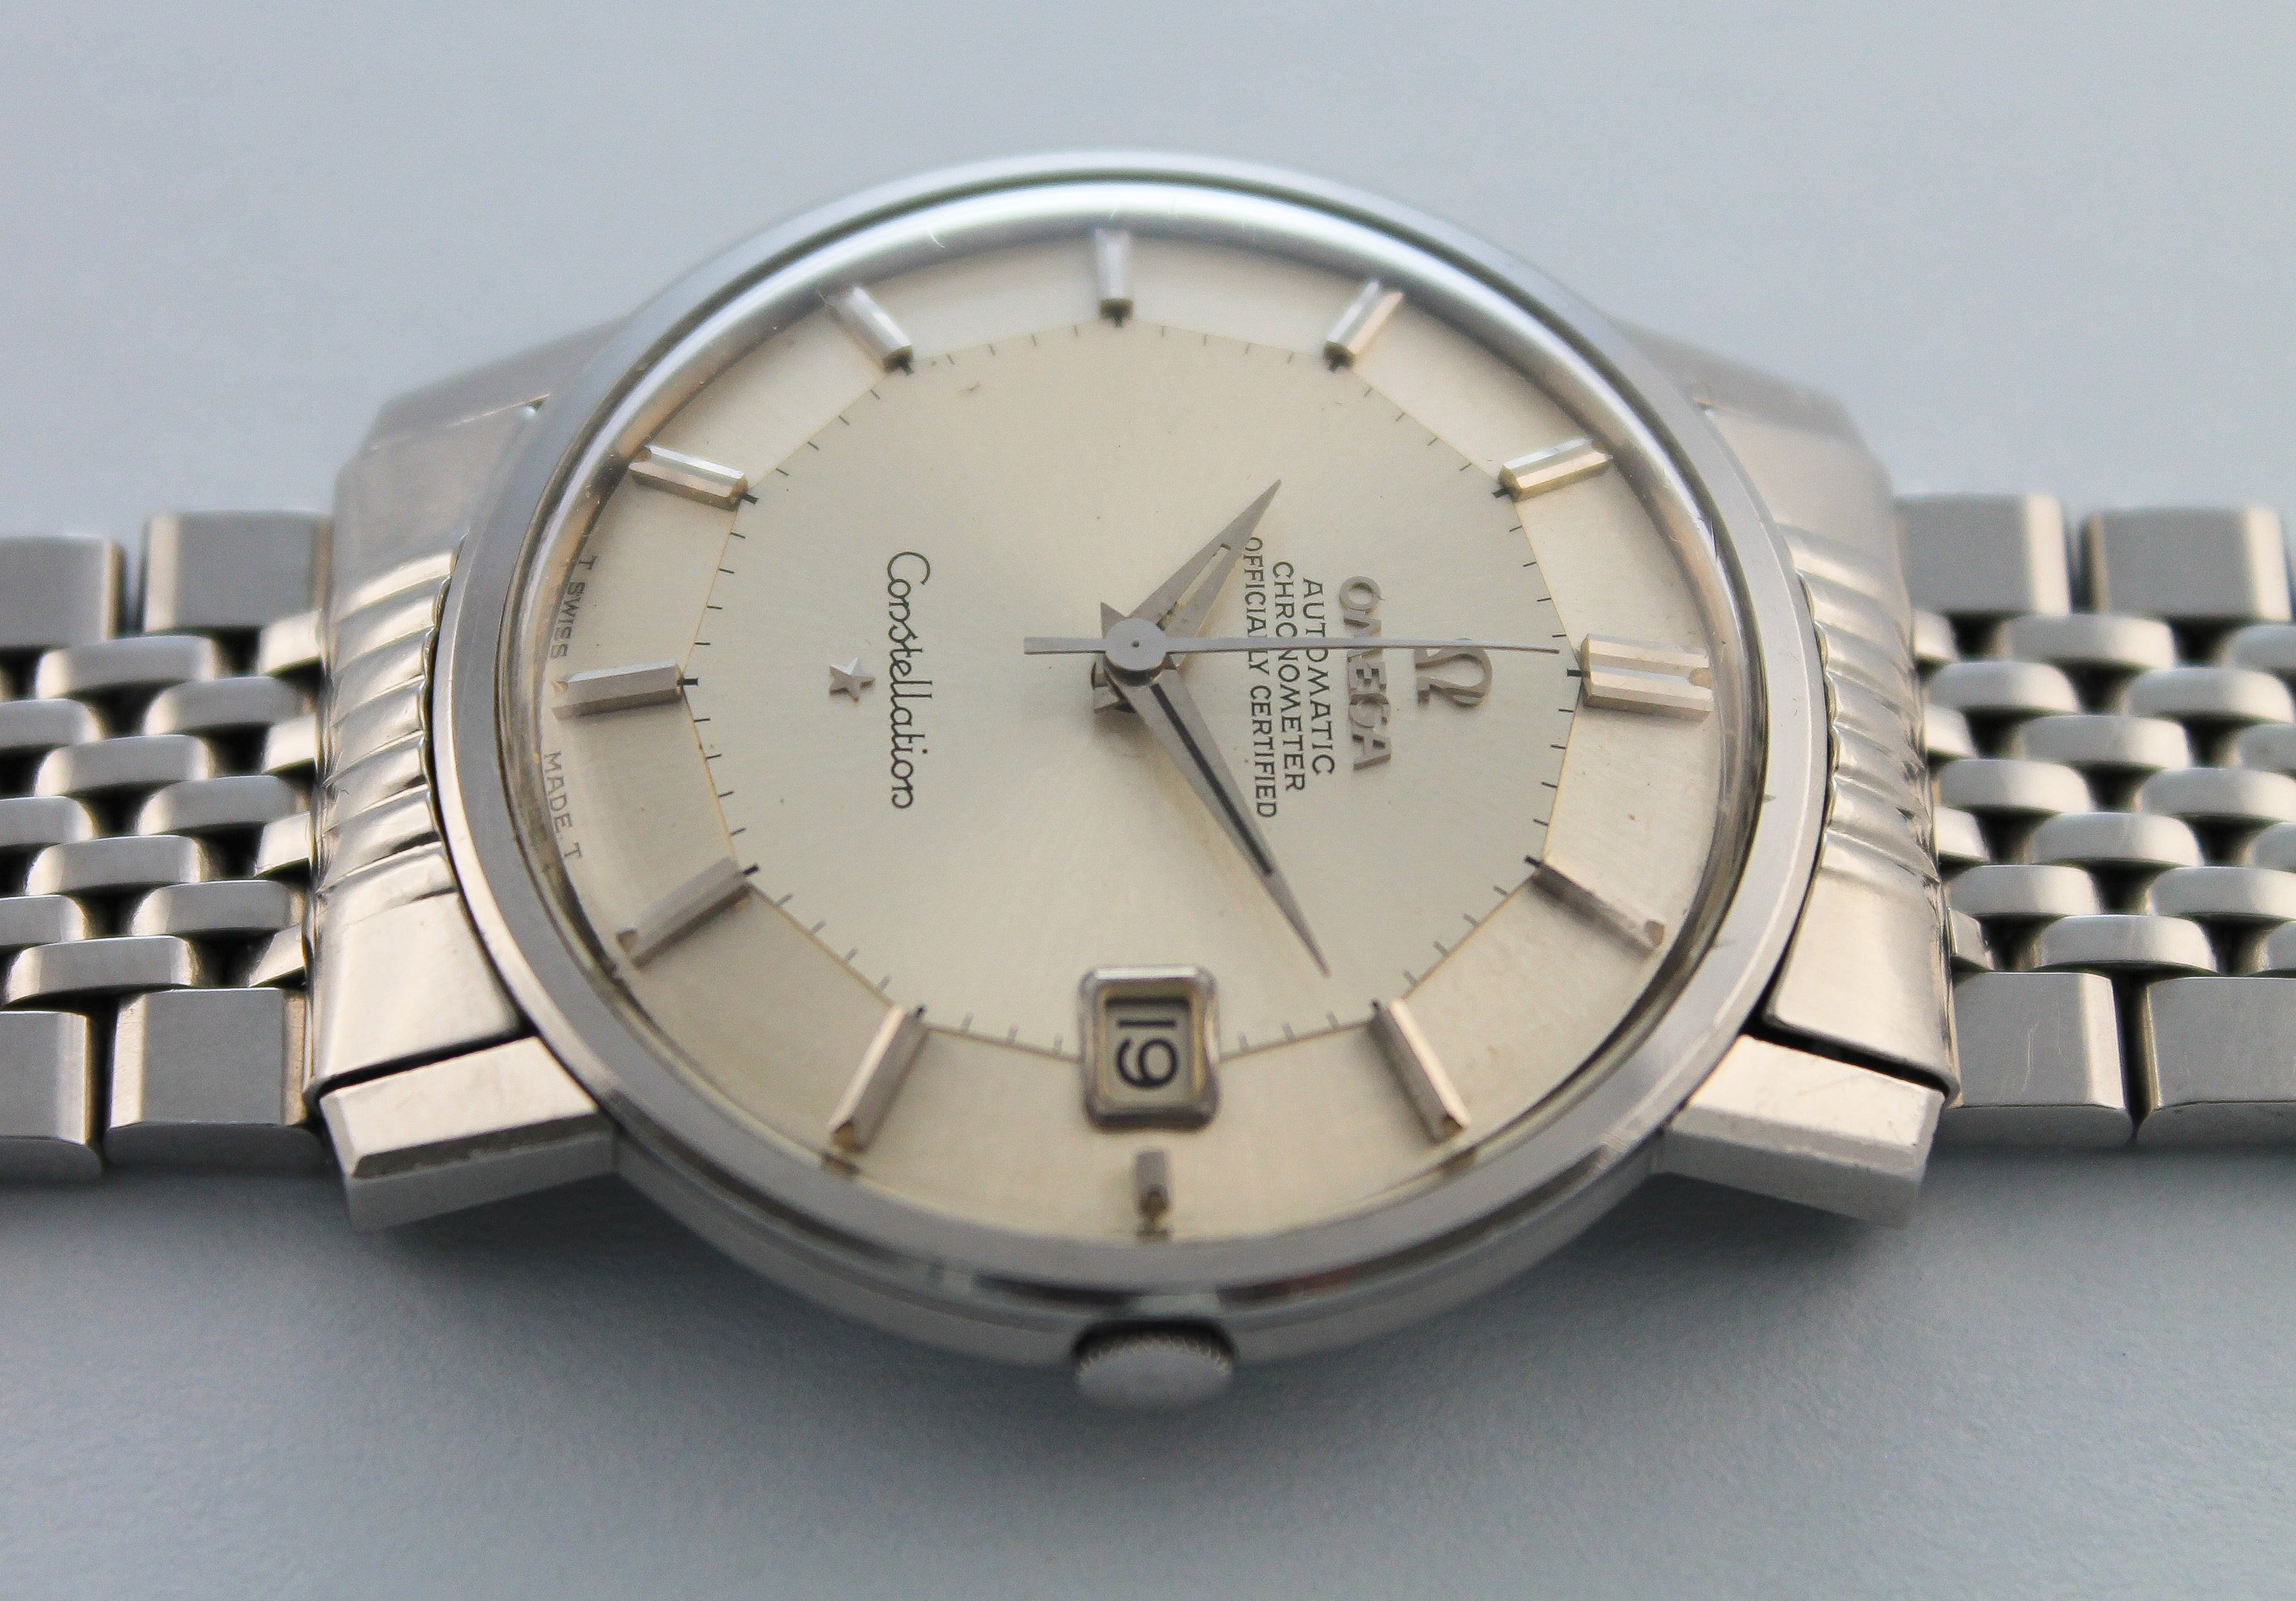 OMEGA Constellation Pie Pan Ref 168.010 Cal 564 (1966)